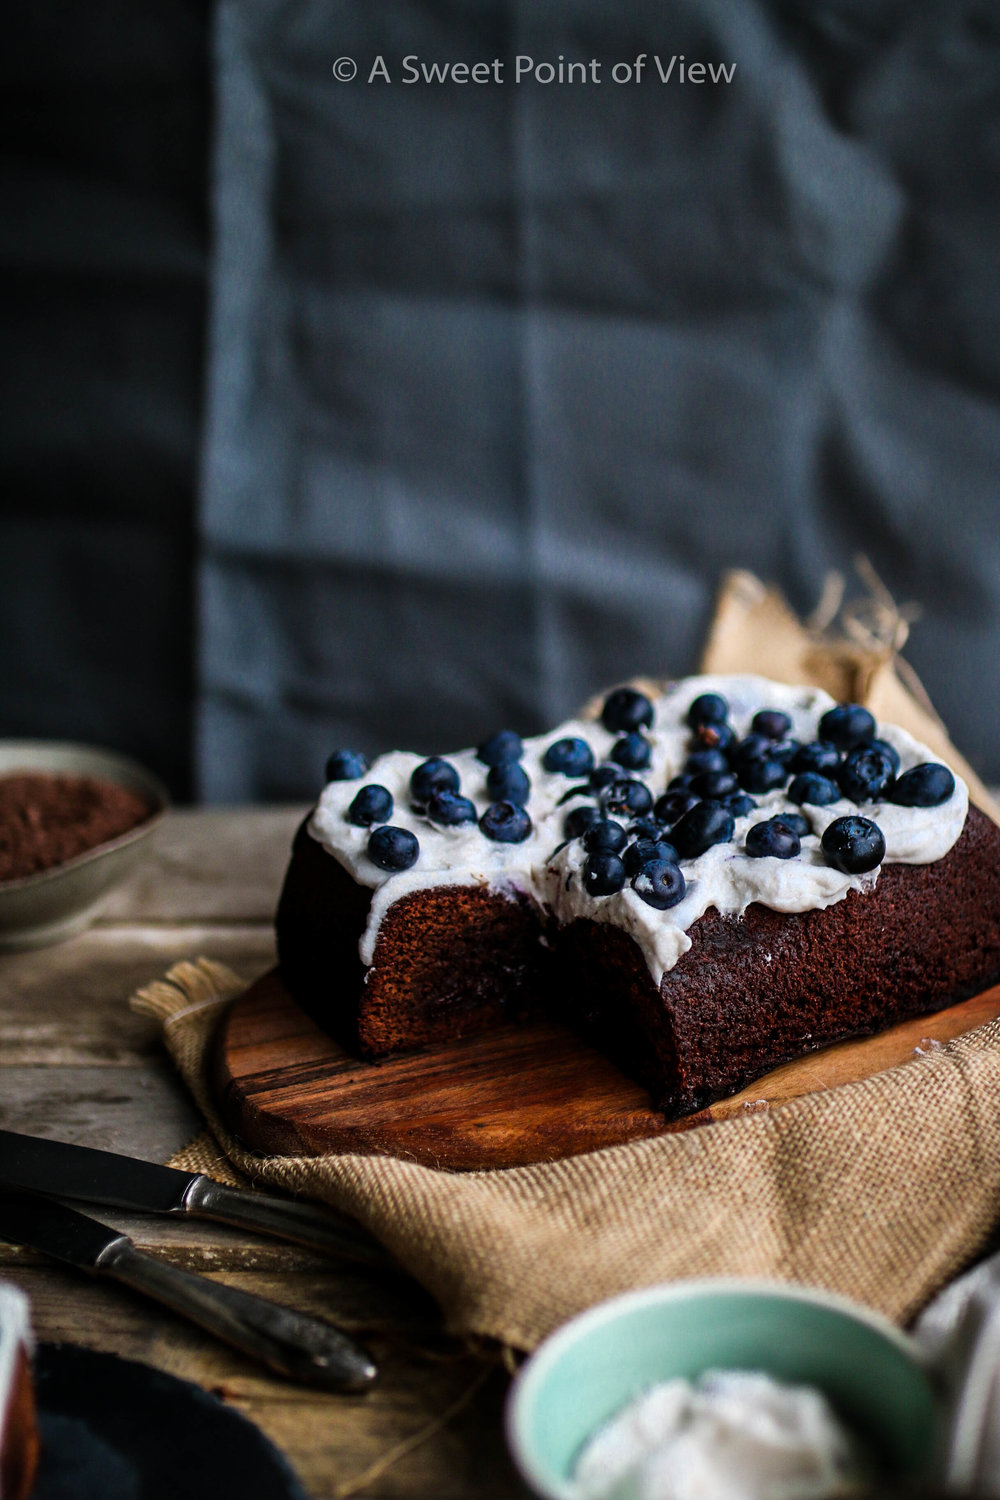 Blueberry-Cake-Billa-Recipe-12-of-1.jpg